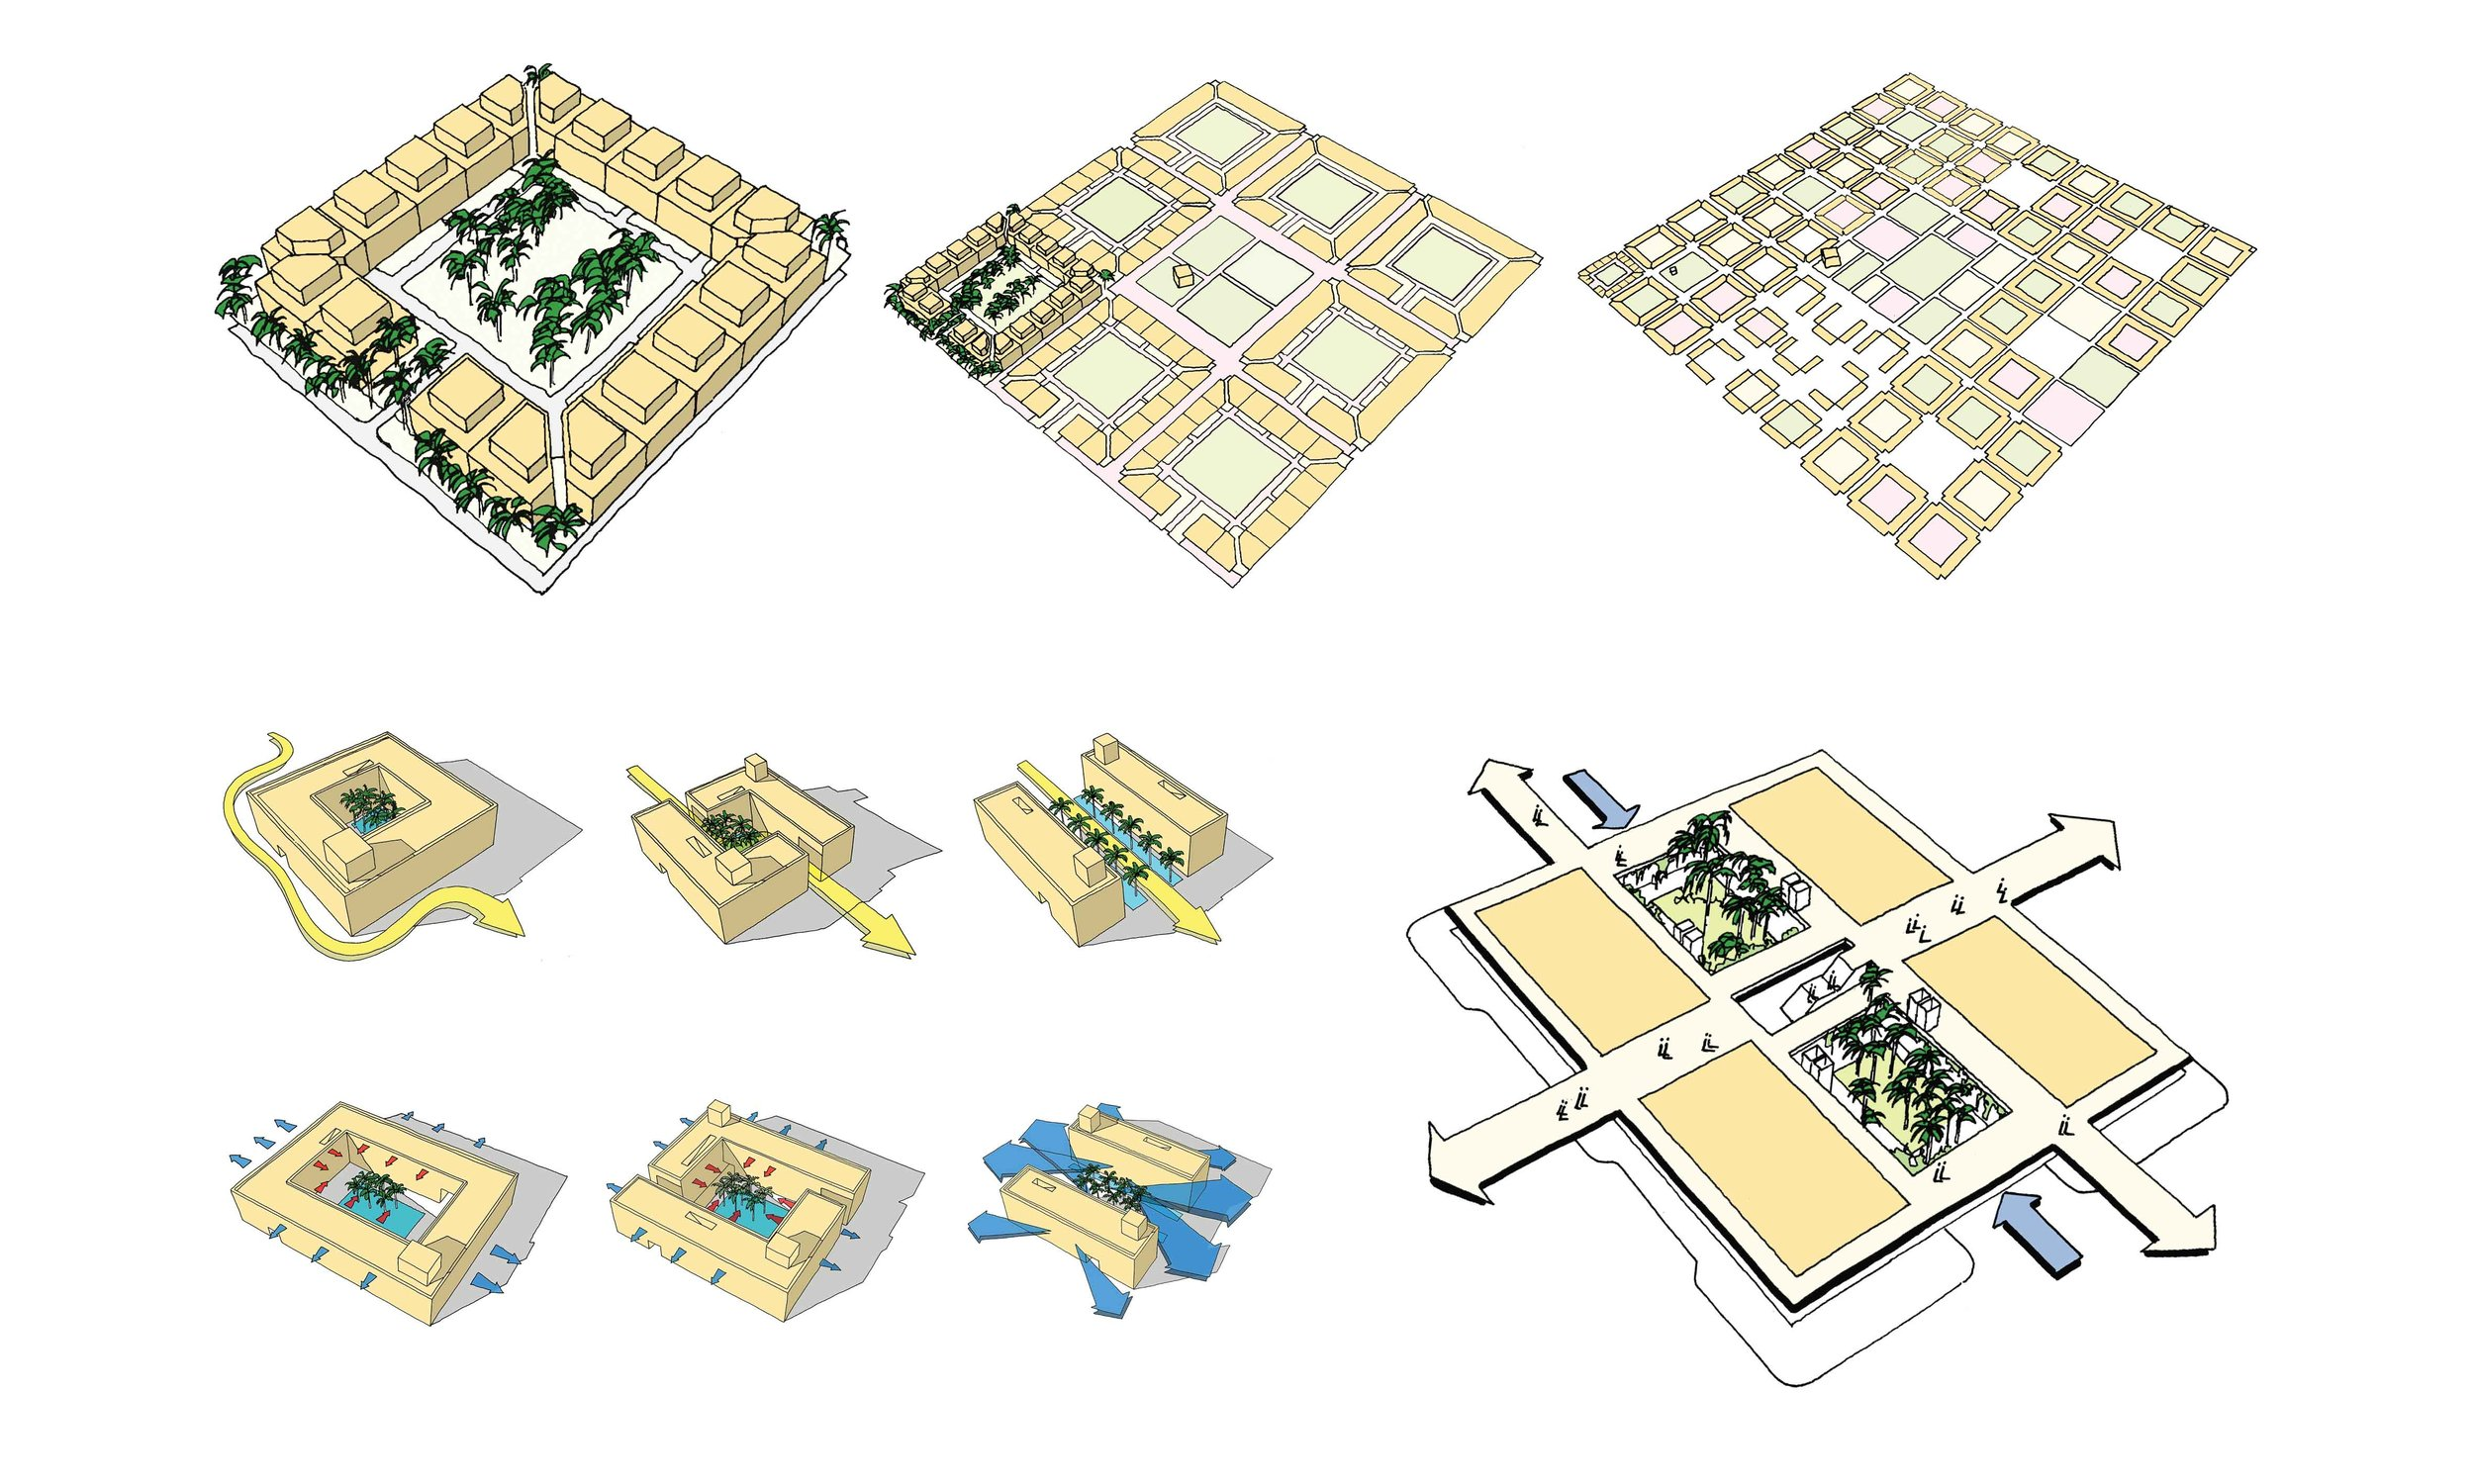 Diagrams demonstrating the Fareej inspired buildings for the concept for the masterplan.